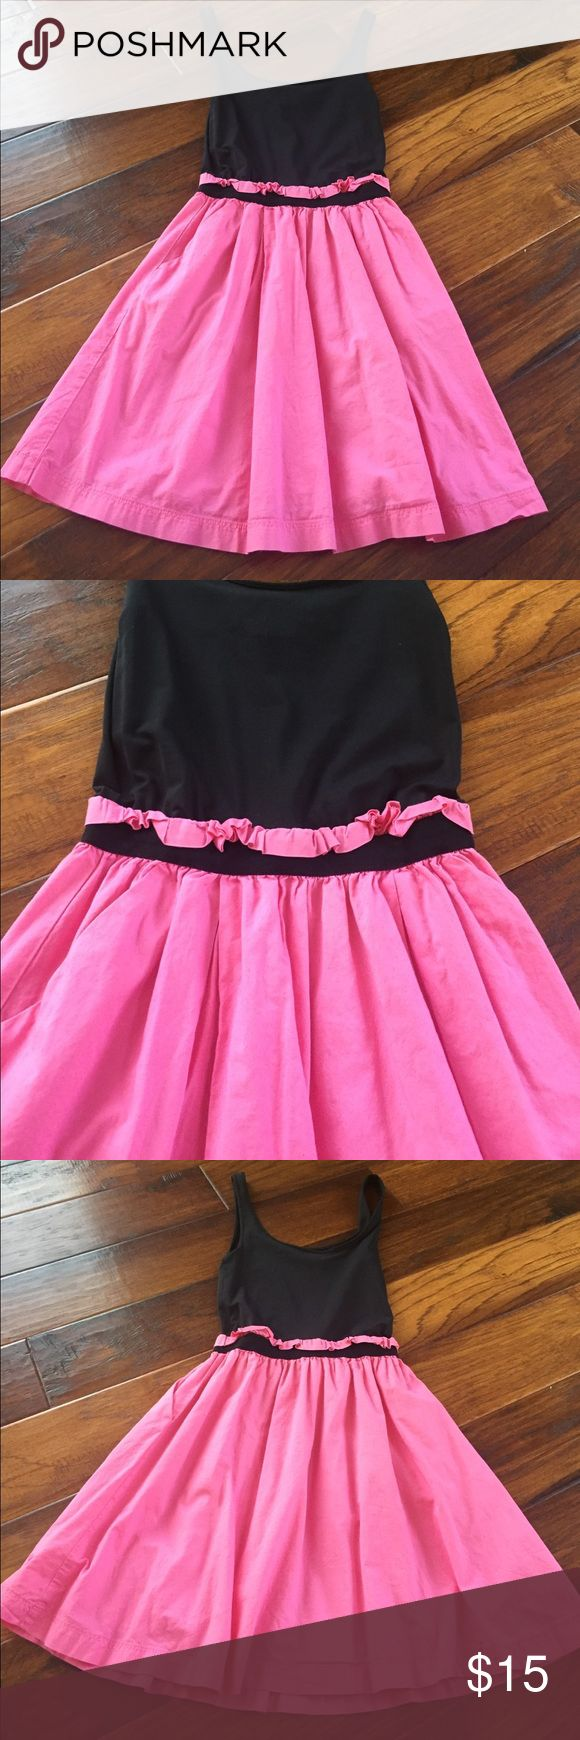 30% Off Bundles! PINK Victoria Secret Dress 👗 Size XS PINK Victoria Secret Dress. Pink on the bottom and black on the top. Fitted at the waist. In excellent condition👗💋🎀 PINK Victoria's Secret Dresses